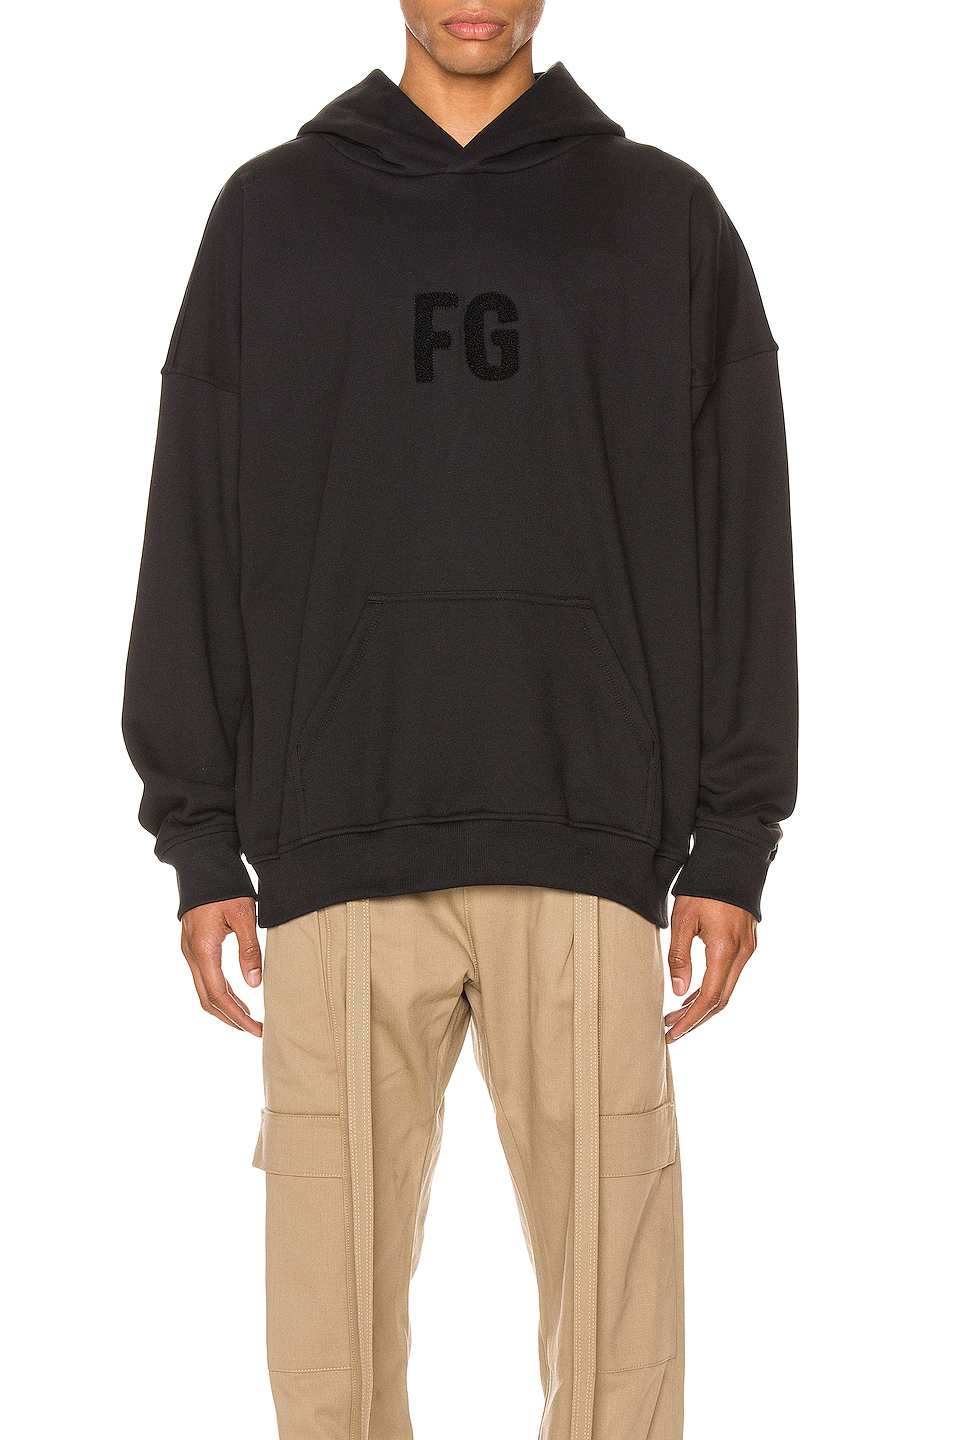 Image 1 of Fear of God Everyday FG Hoodie in Vintage Black & Black